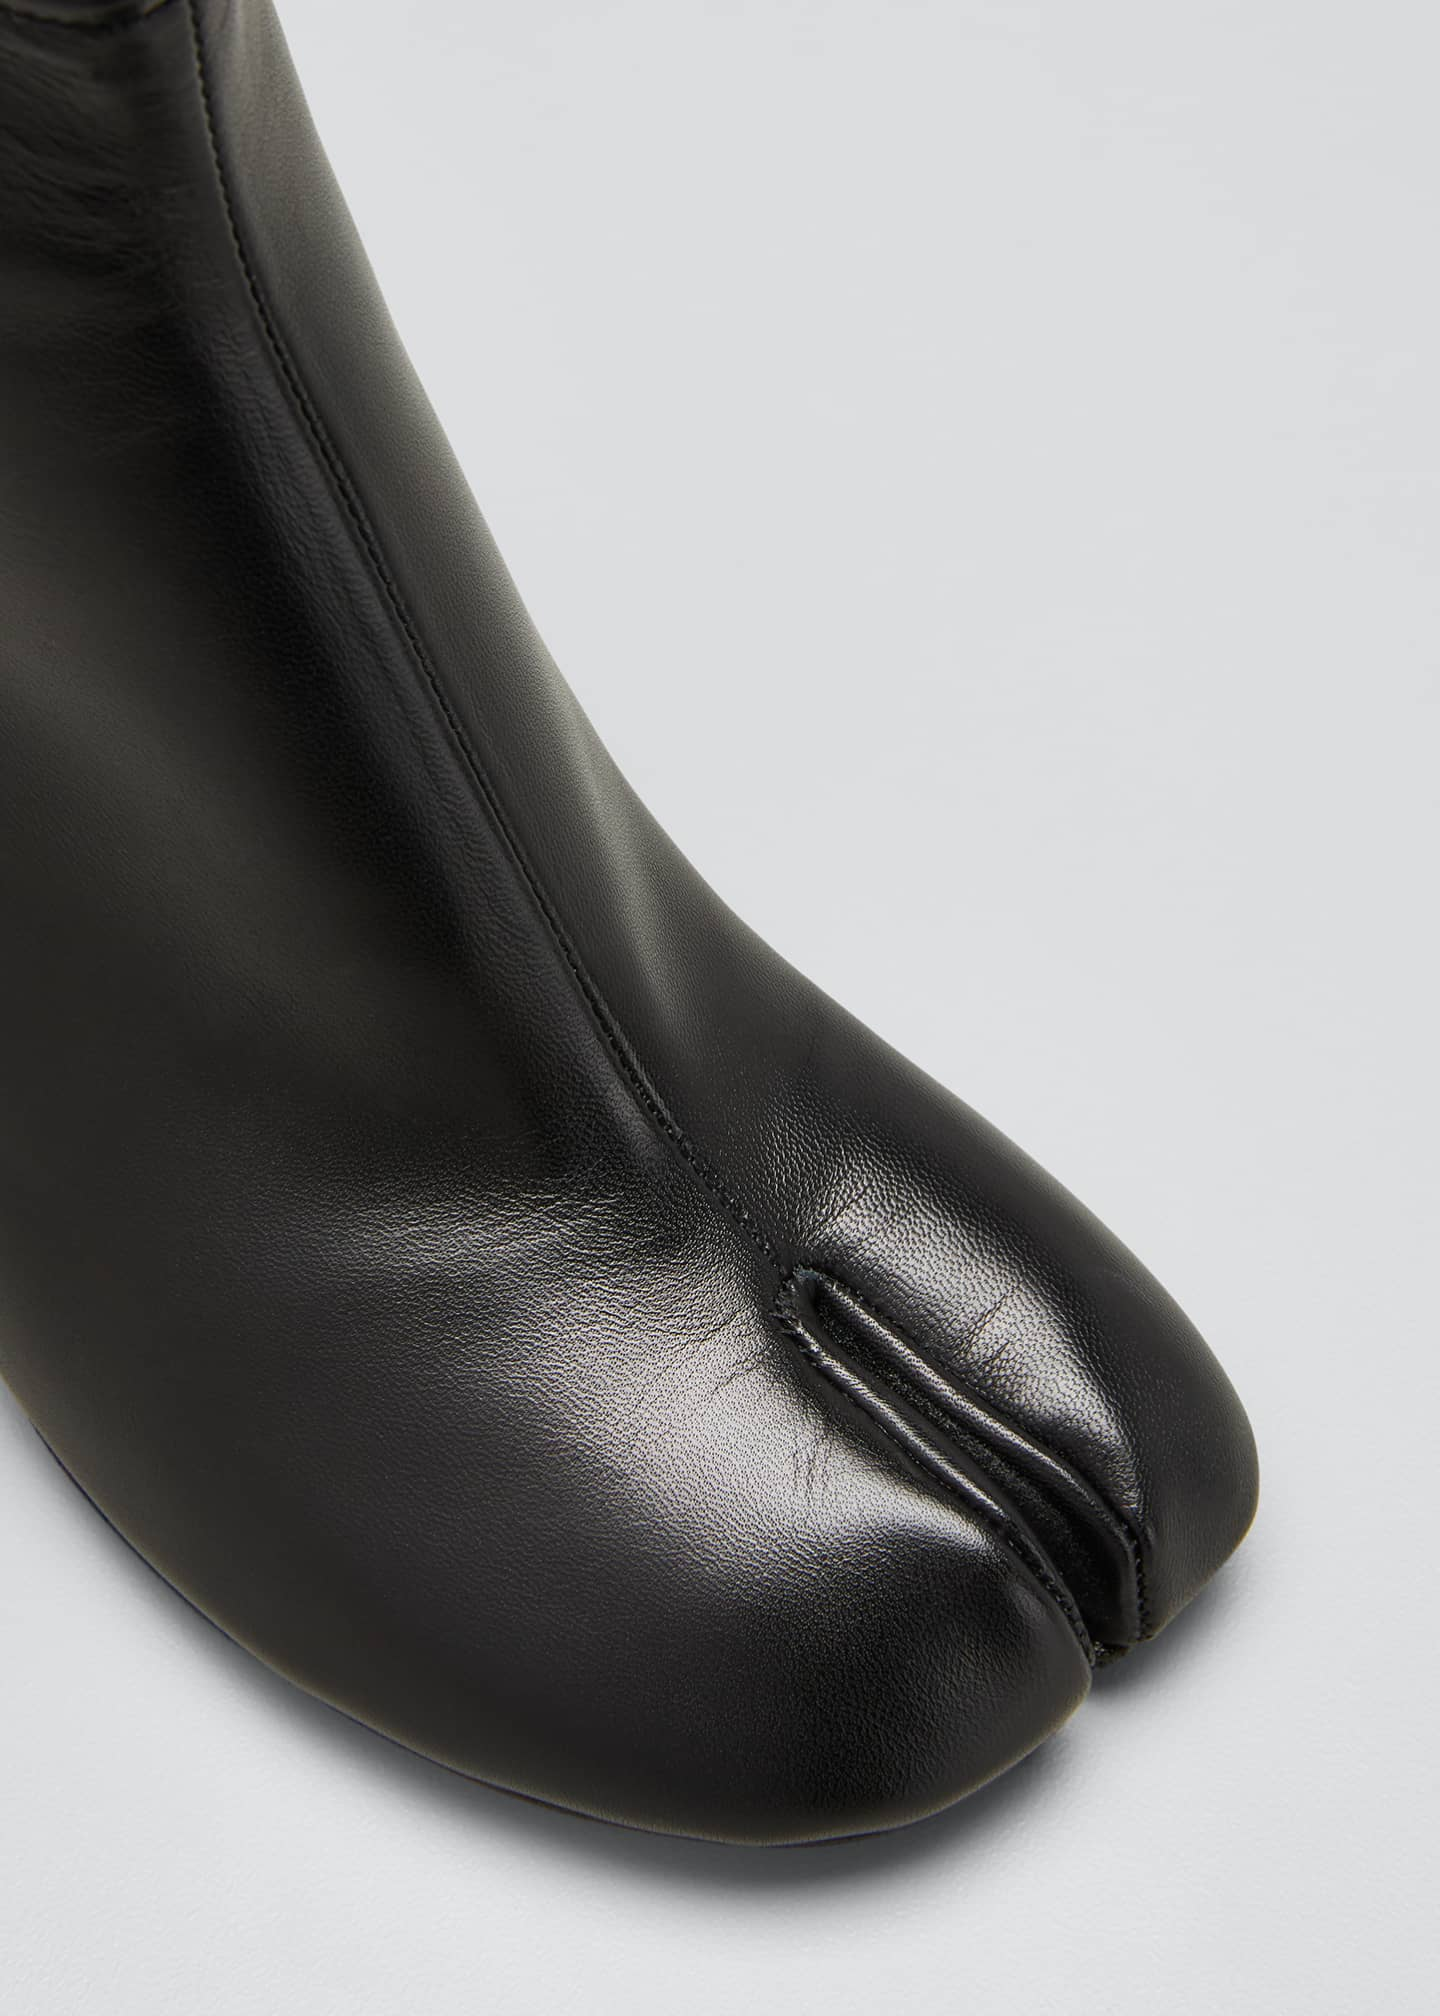 Image 4 of 4: Tabi Stiletto Leather Back-Zip Booties